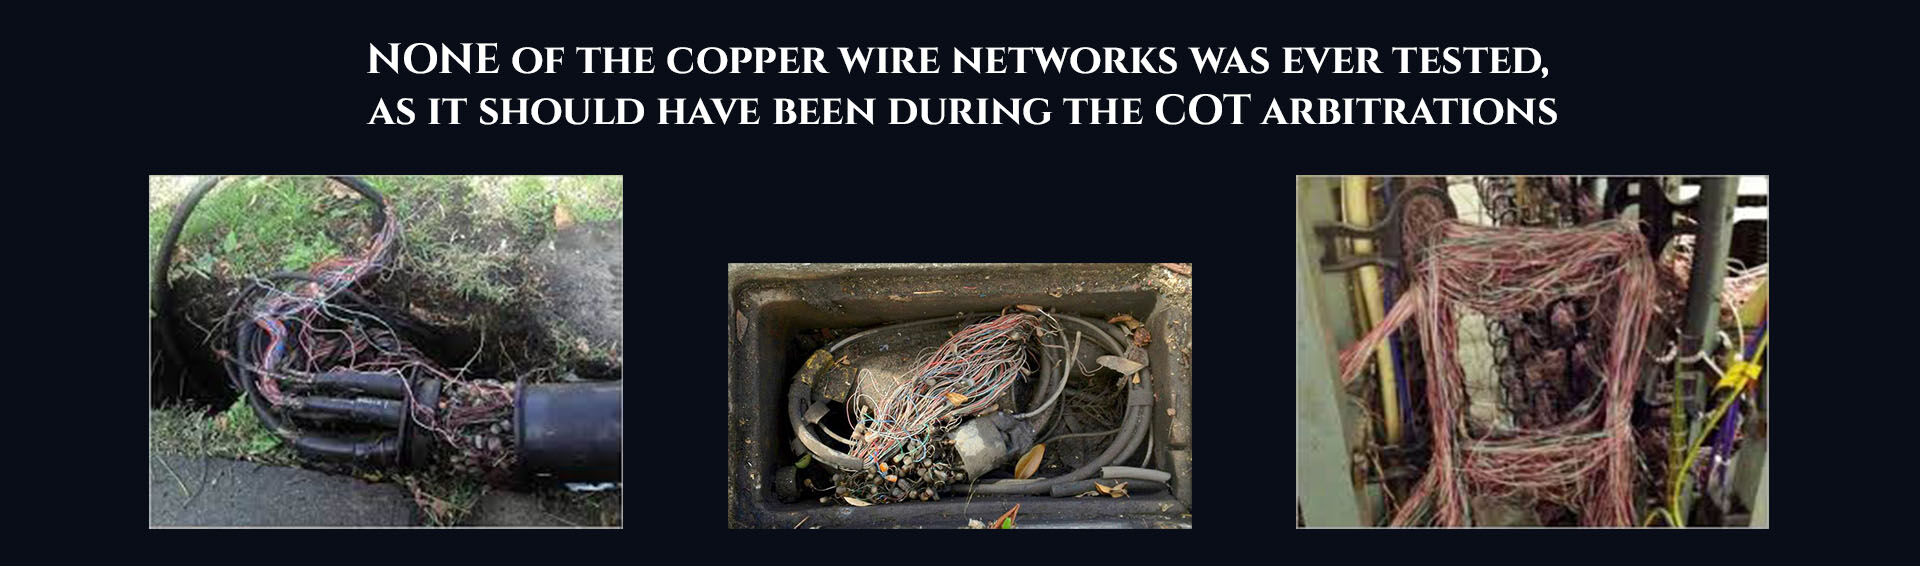 Absent Justice - Poor Copper Network